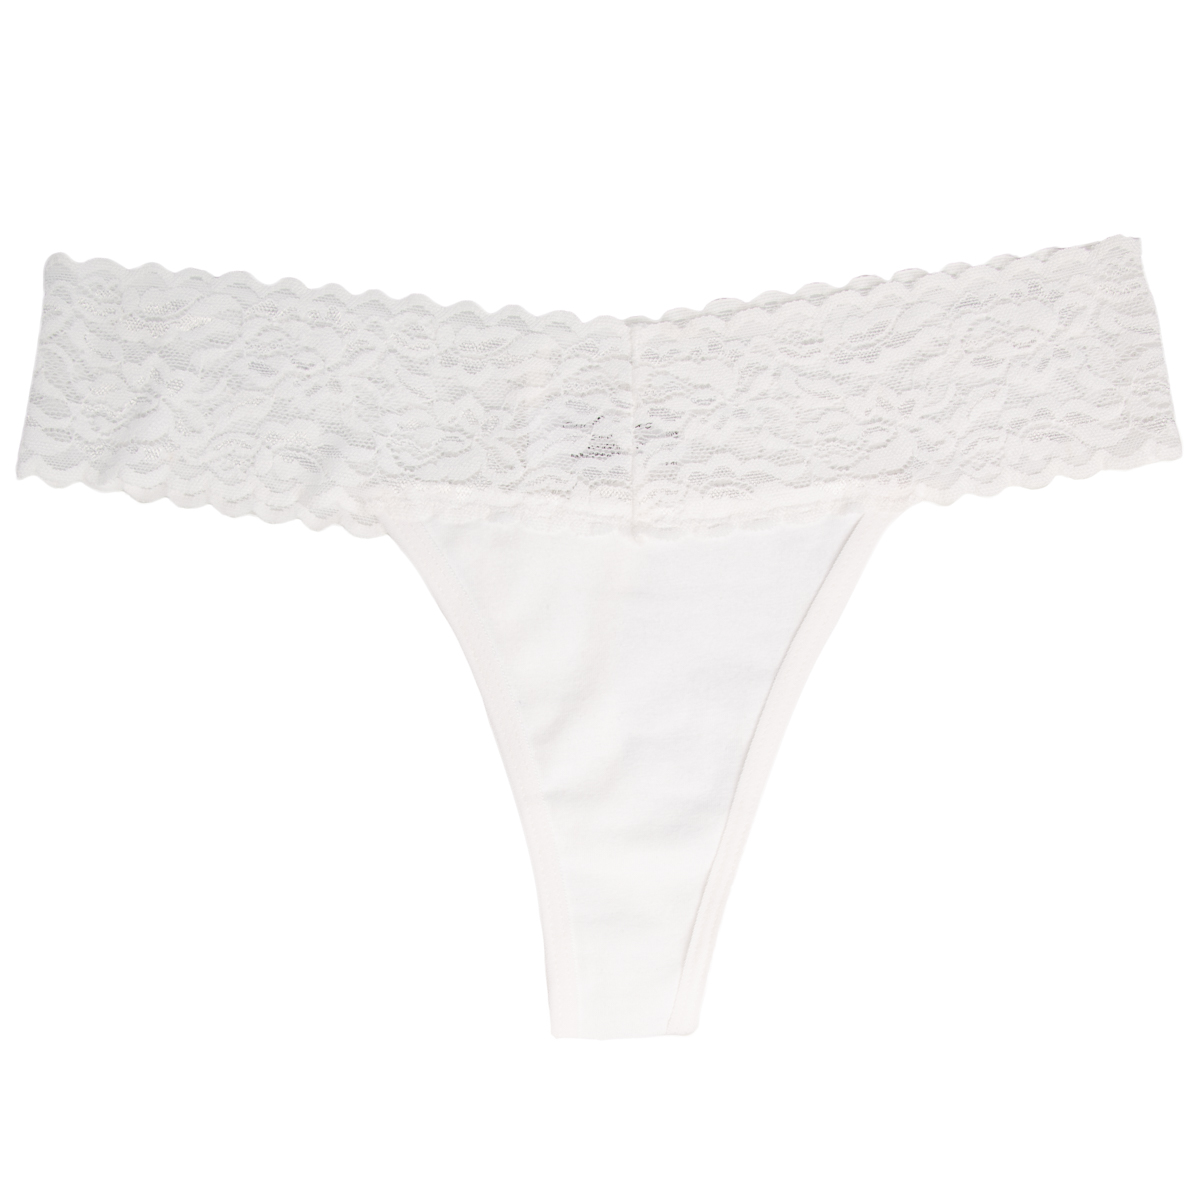 6-Pack-Cotton-Lace-Thong-Underwear-For-Women-Soft-Sexy-Lingerie-Panties-Thongs thumbnail 12